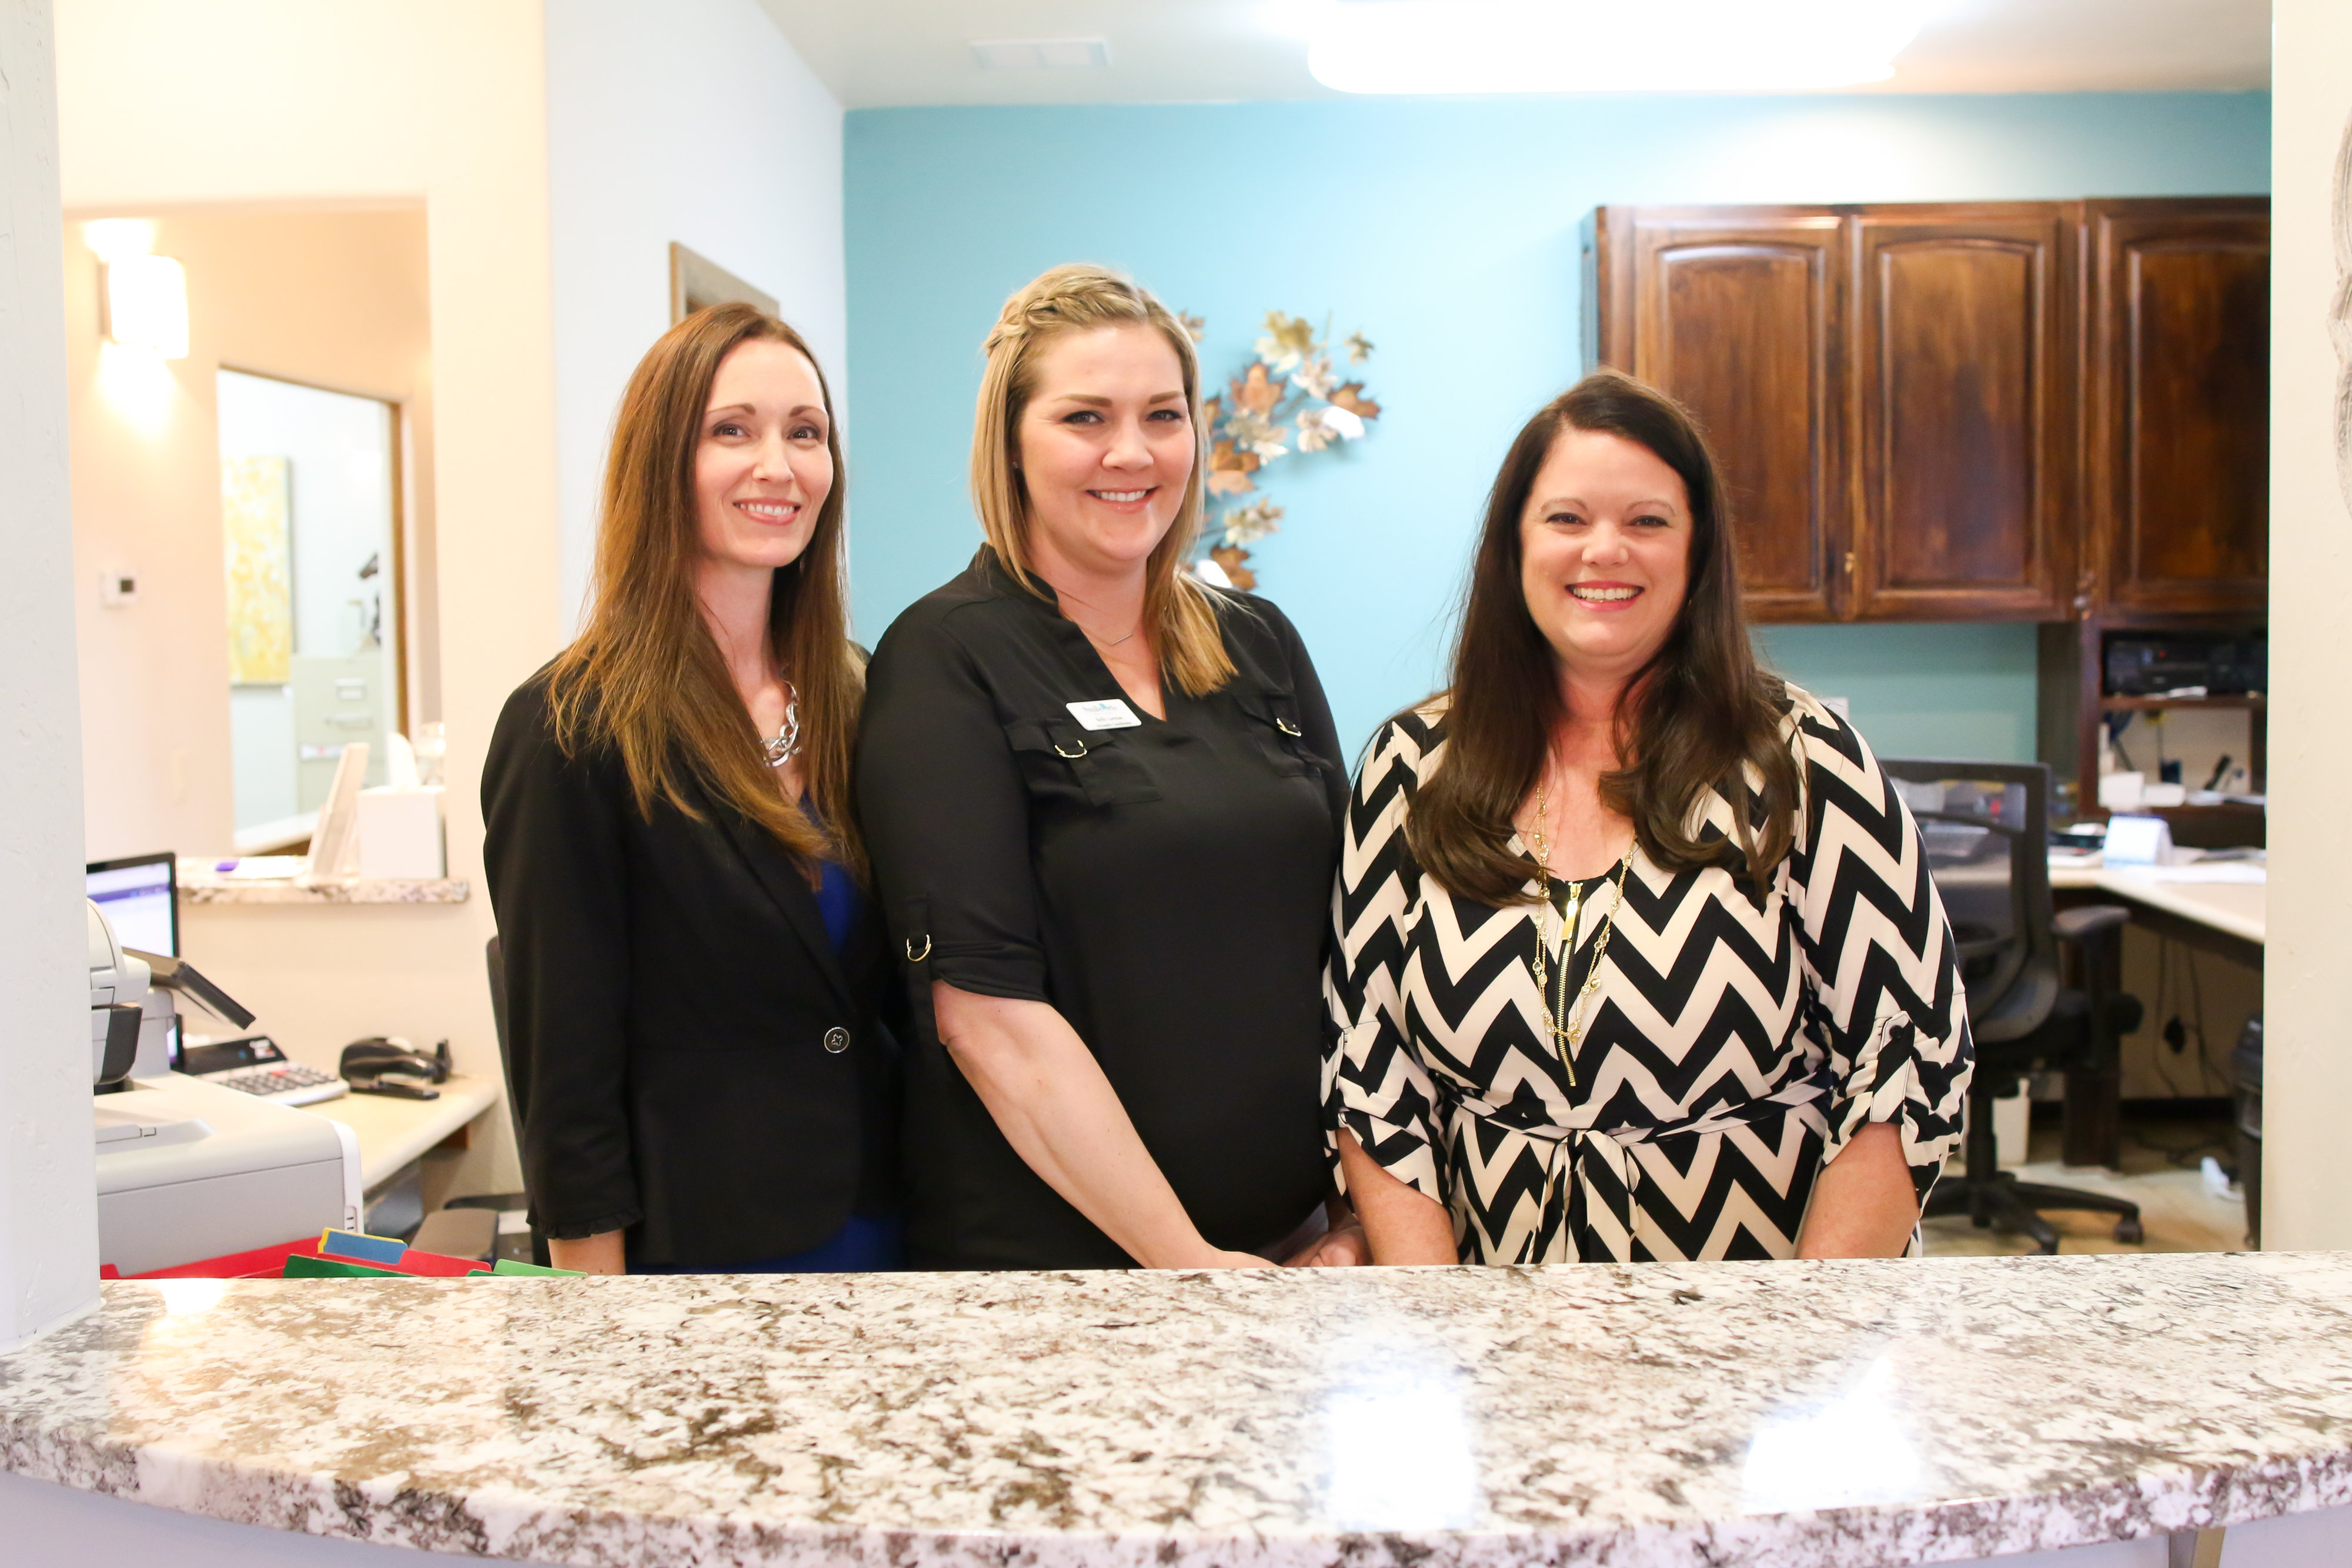 The Friendly Staff at SmileArts Dental Studio in Yukon